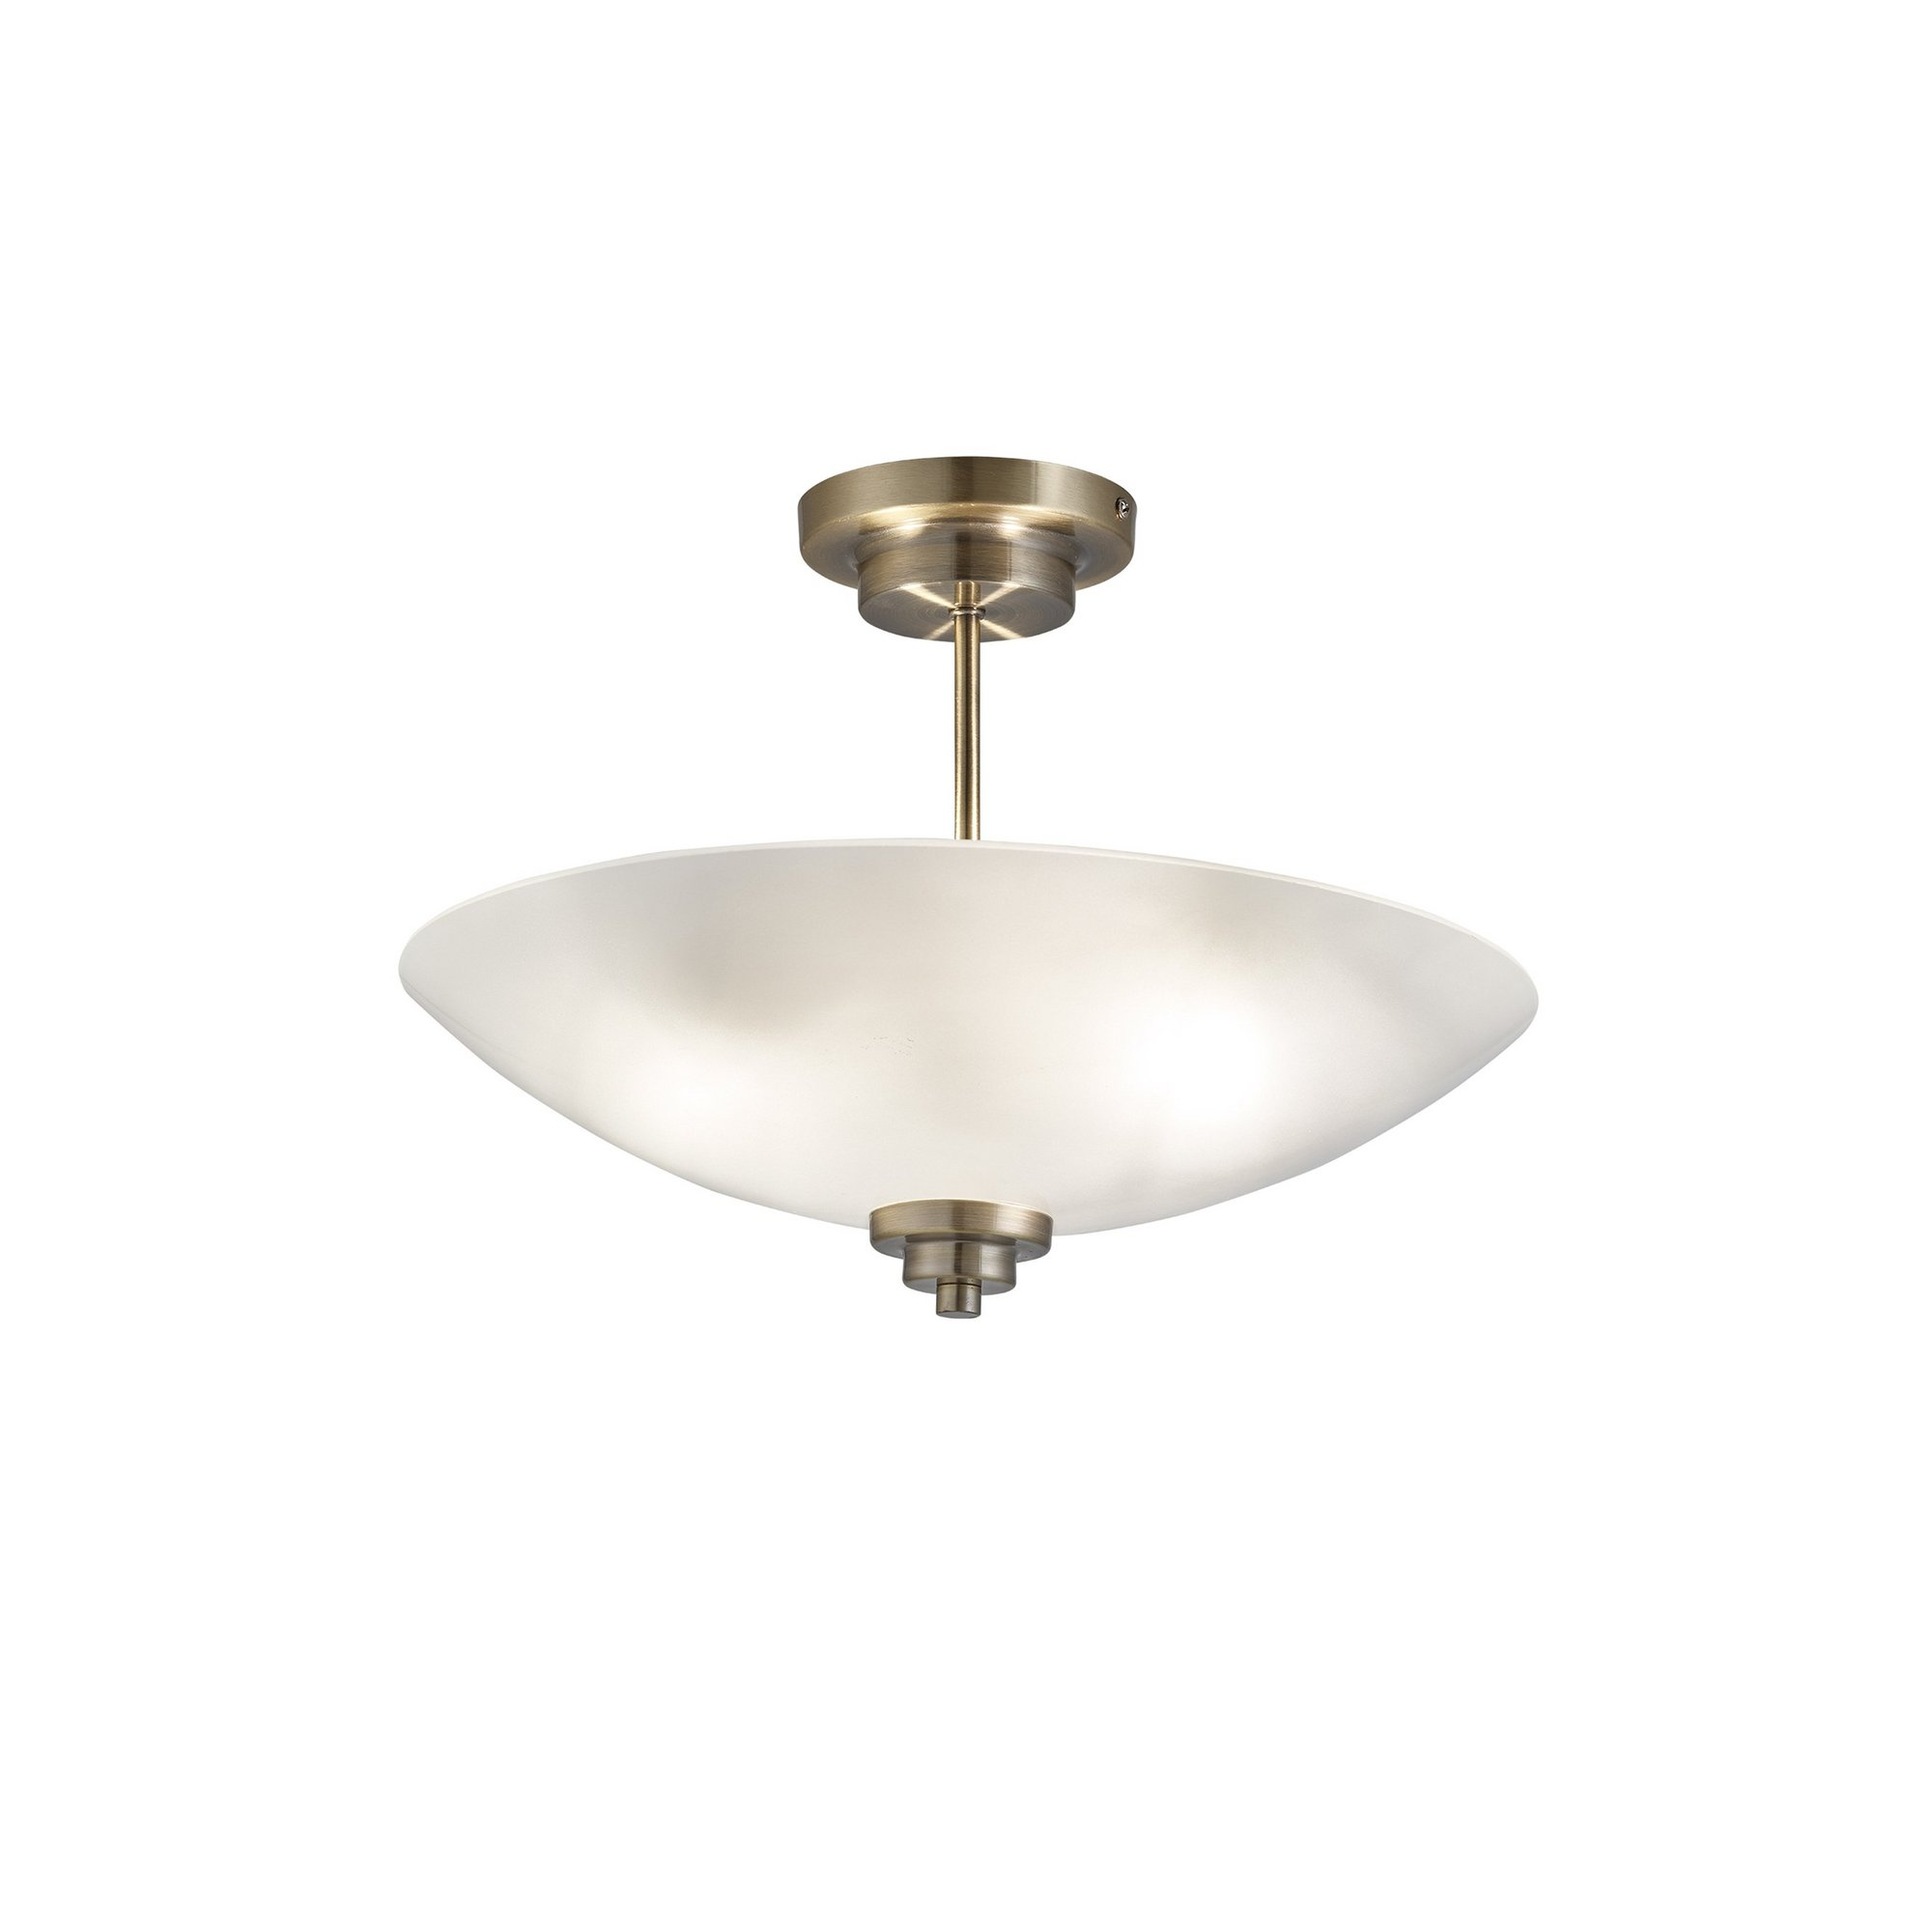 Image of 2 Light Ceiling Light with Frosted Glass Dome